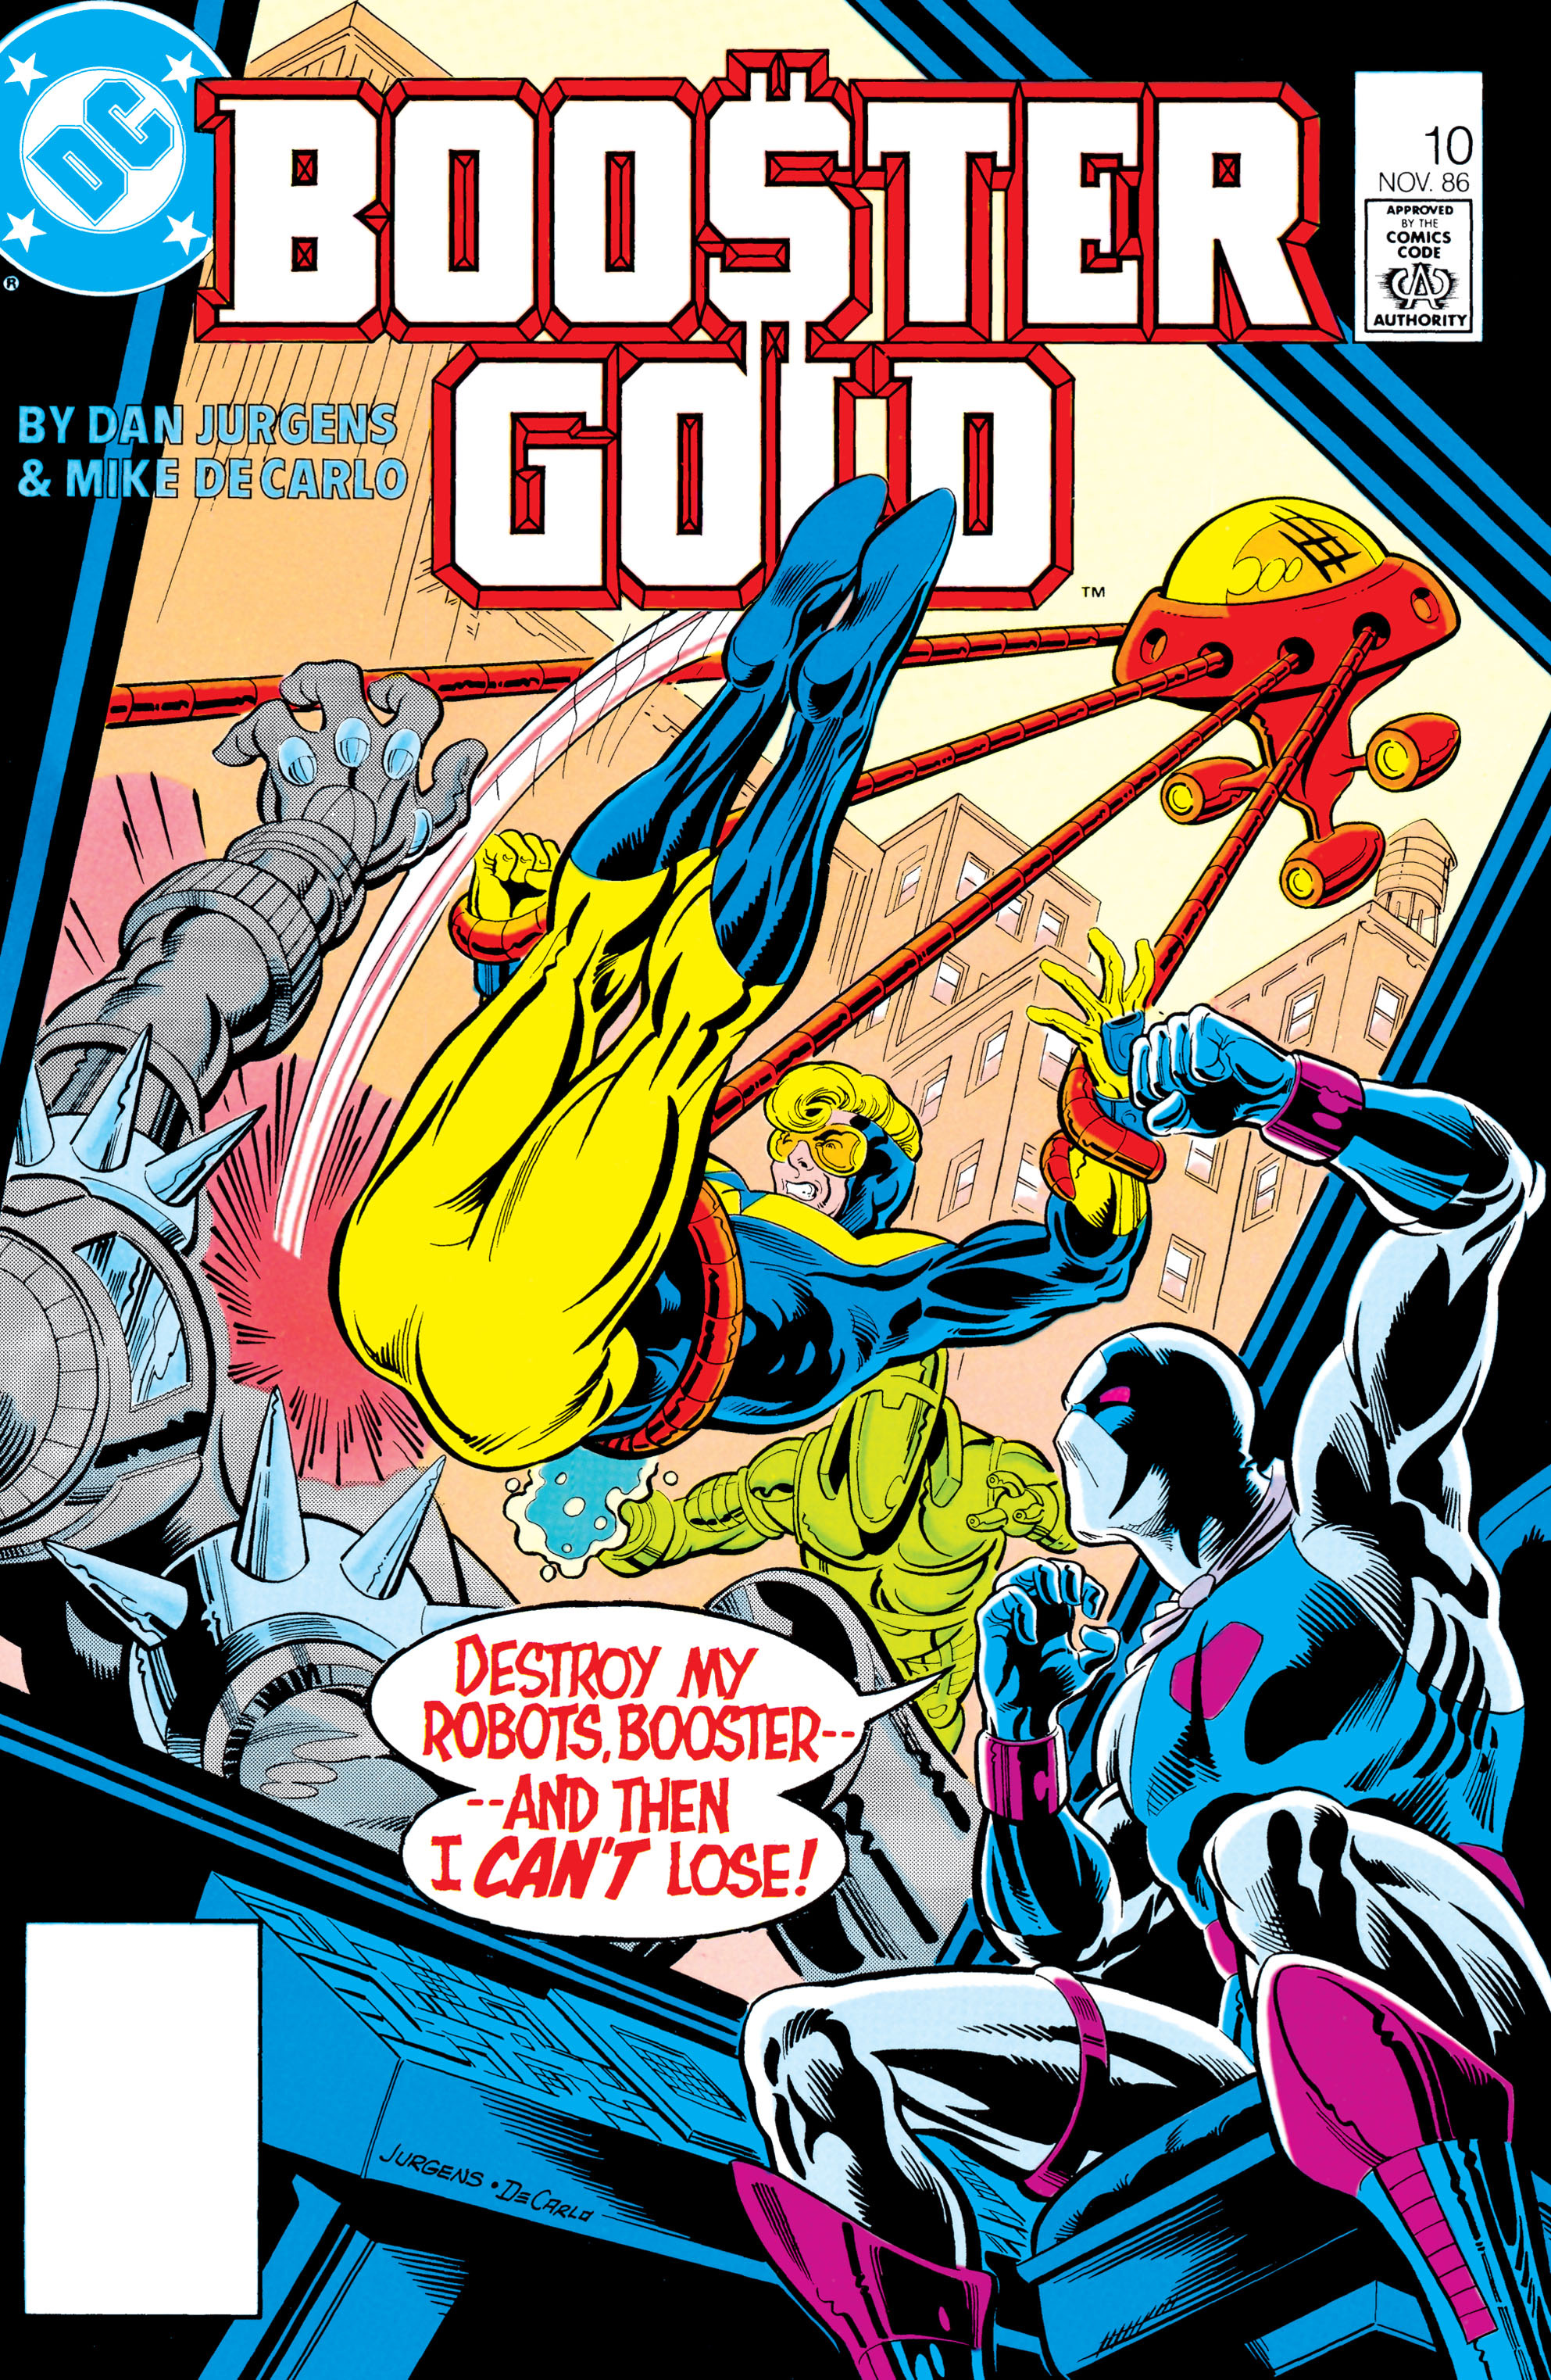 Booster Gold 1986 Issue 10